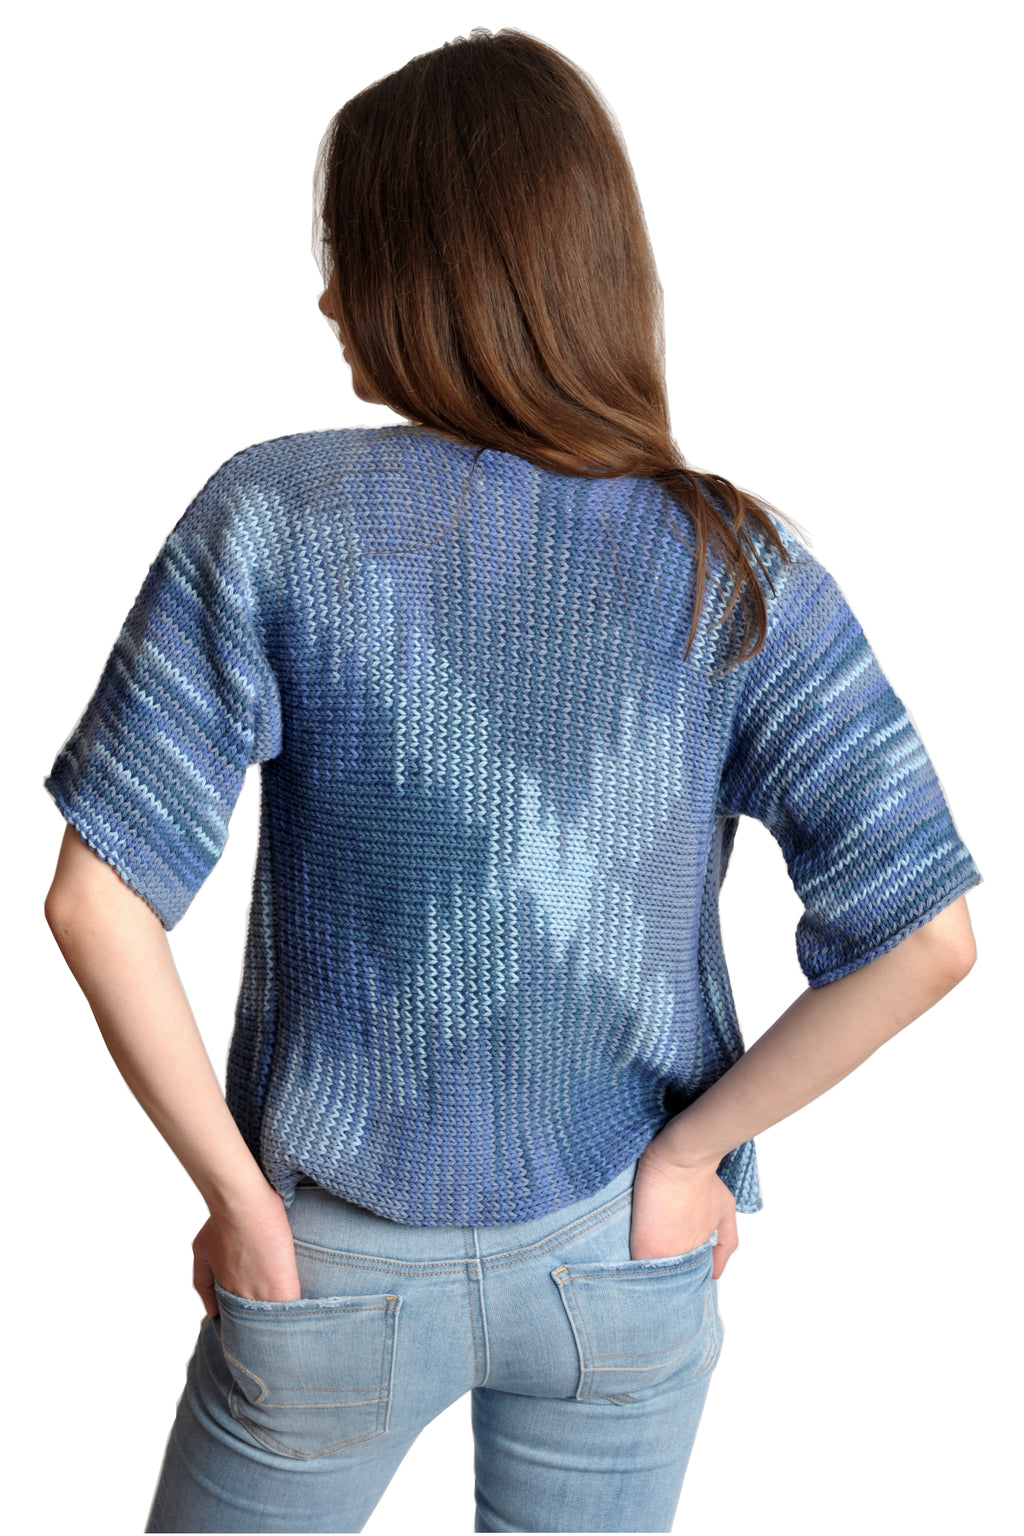 BLUE CAMO COTTON TWISTER TOP